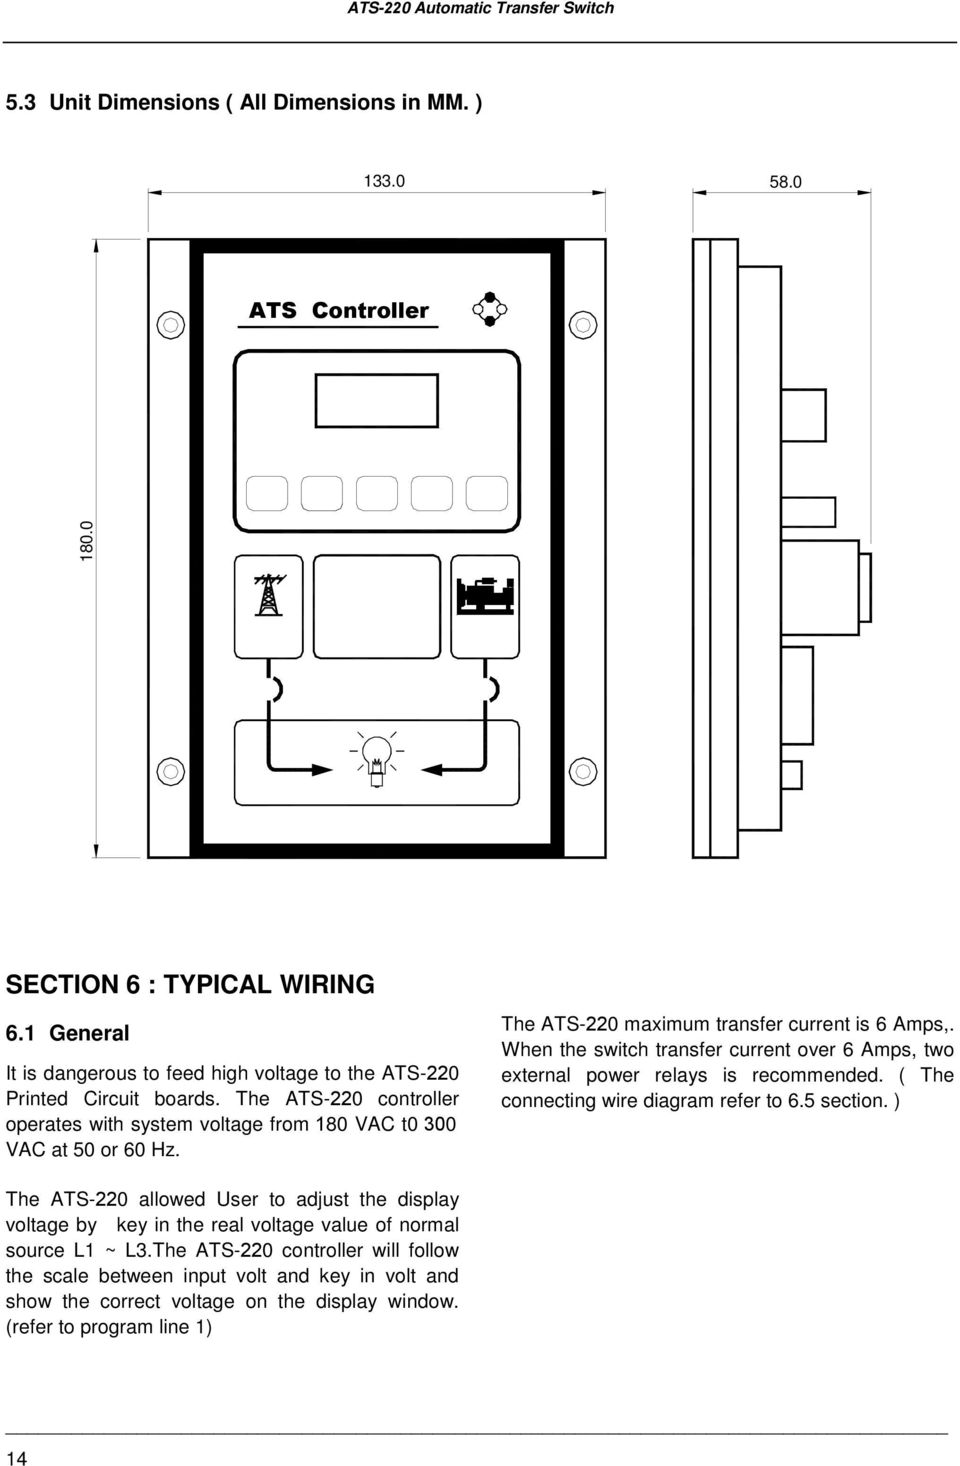 medium resolution of the ats 220 maximum transfer current is 6 amps when the switch transfer